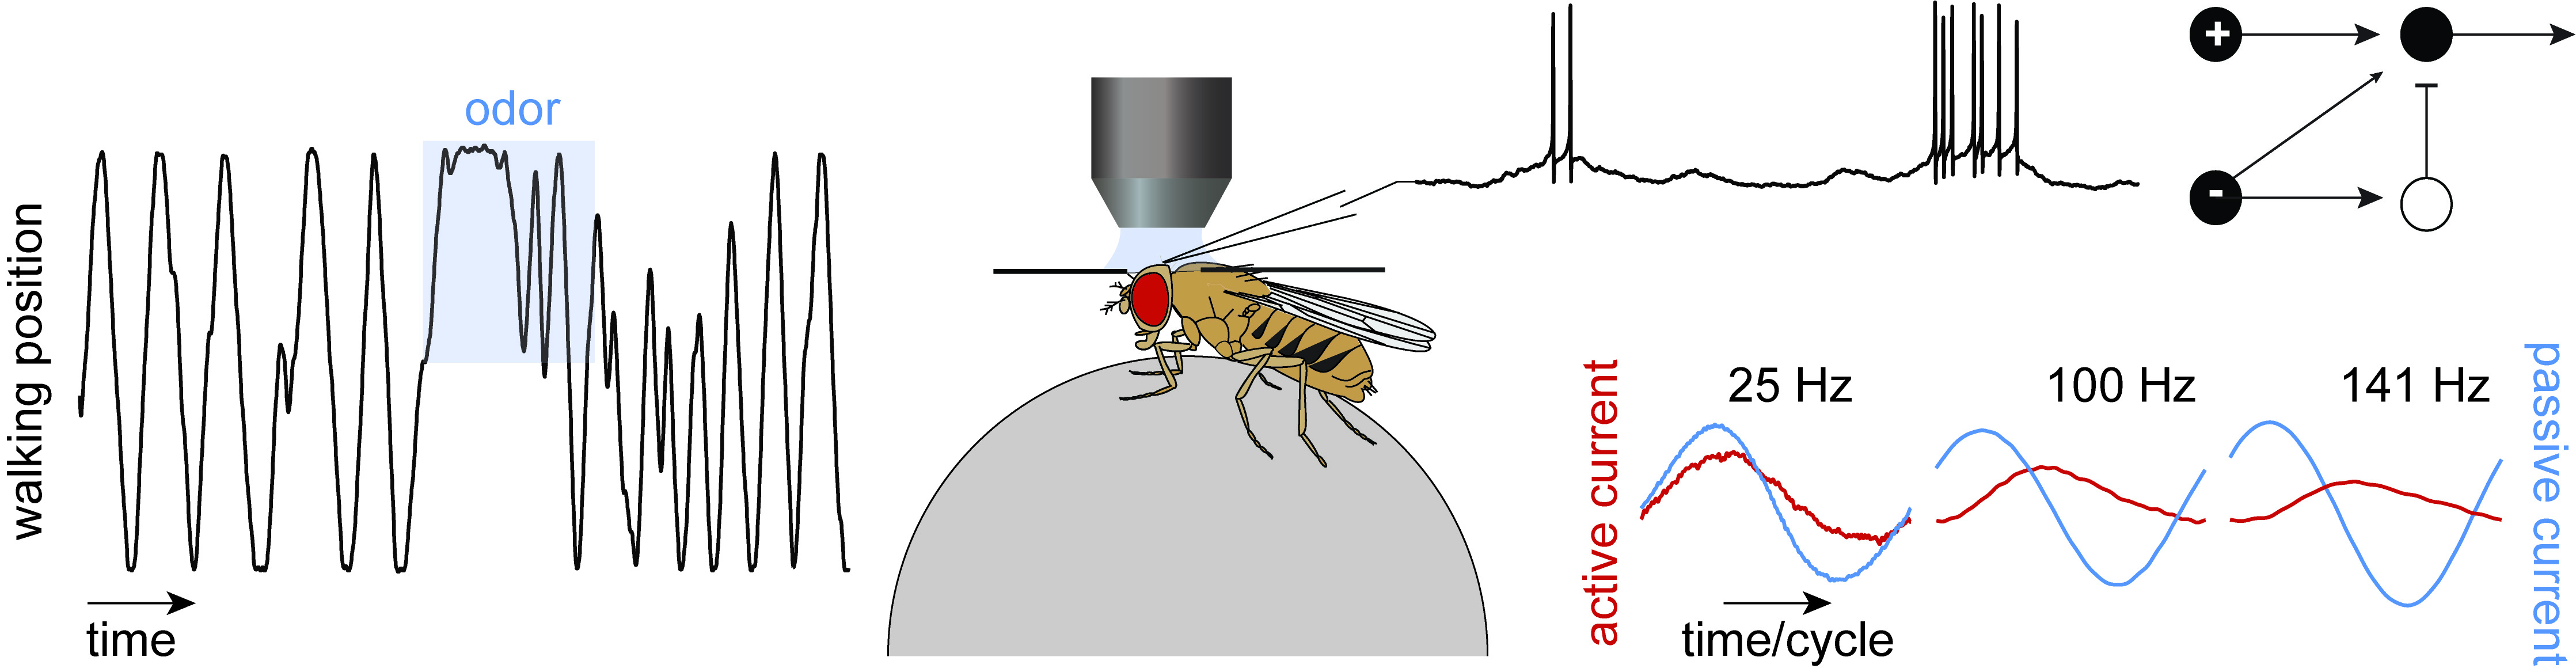 hight resolution of diagram of housefly